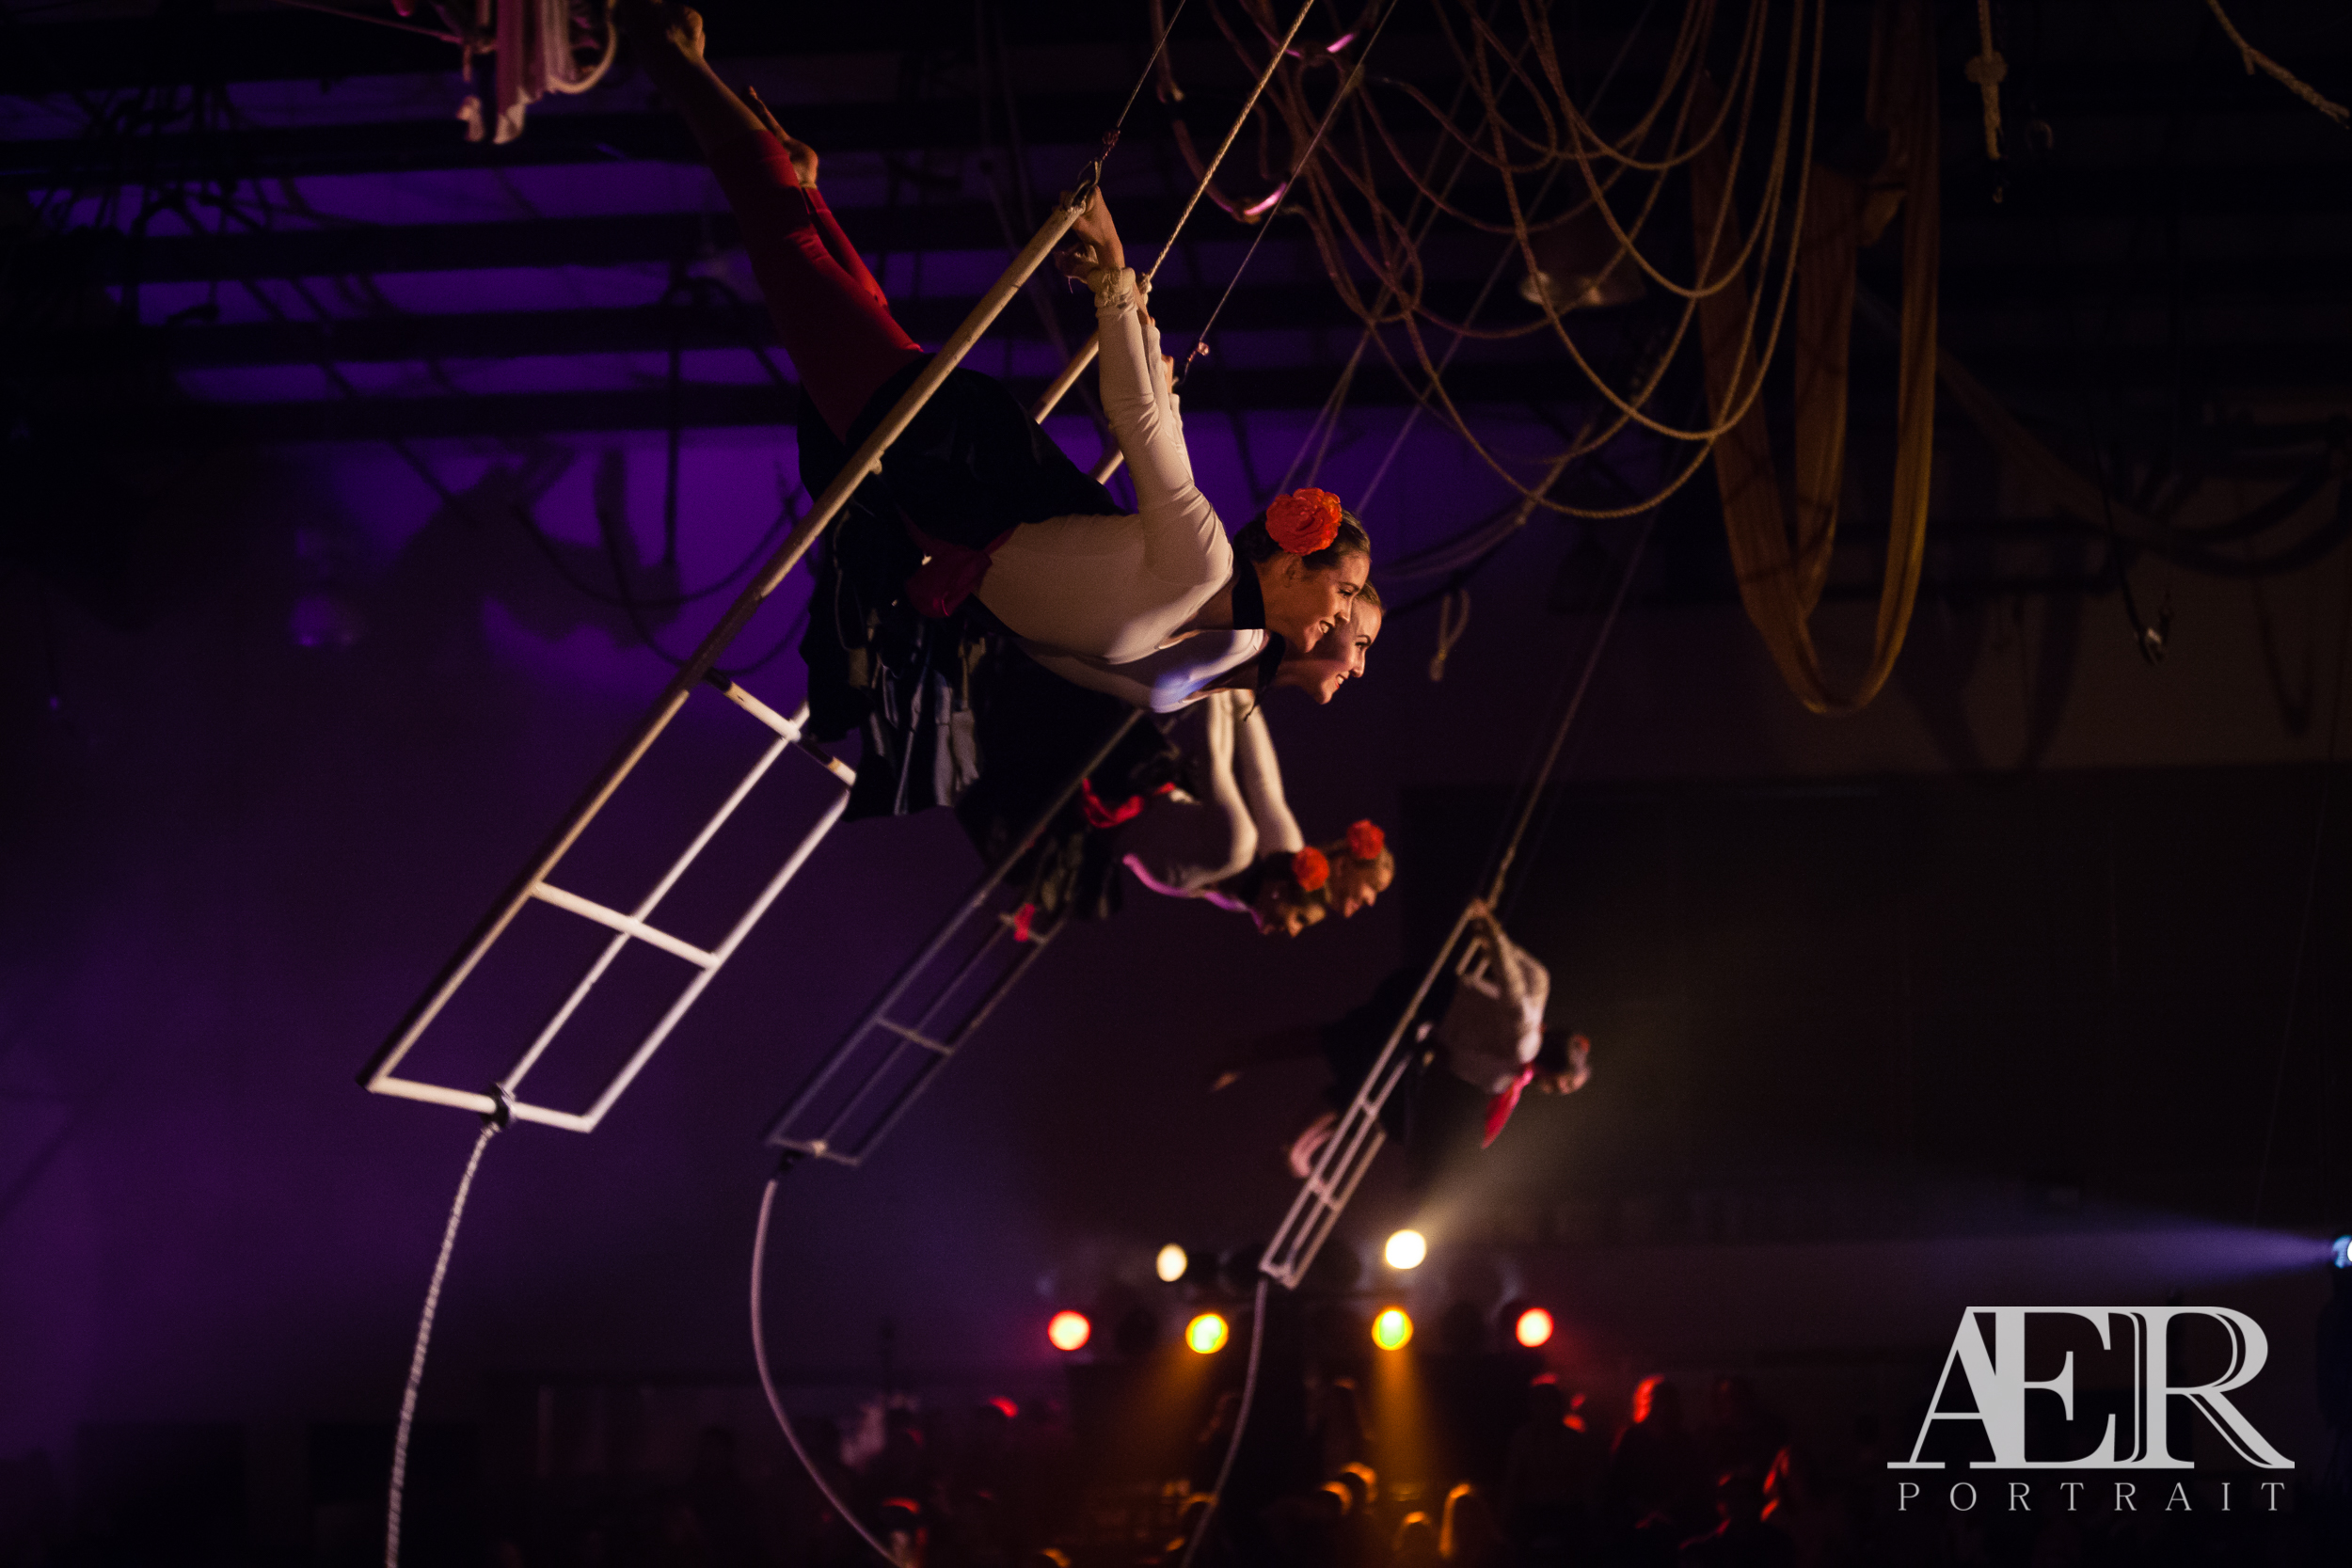 Louisville Performing Arts Photography - Turners Circus - AER Portrait 42